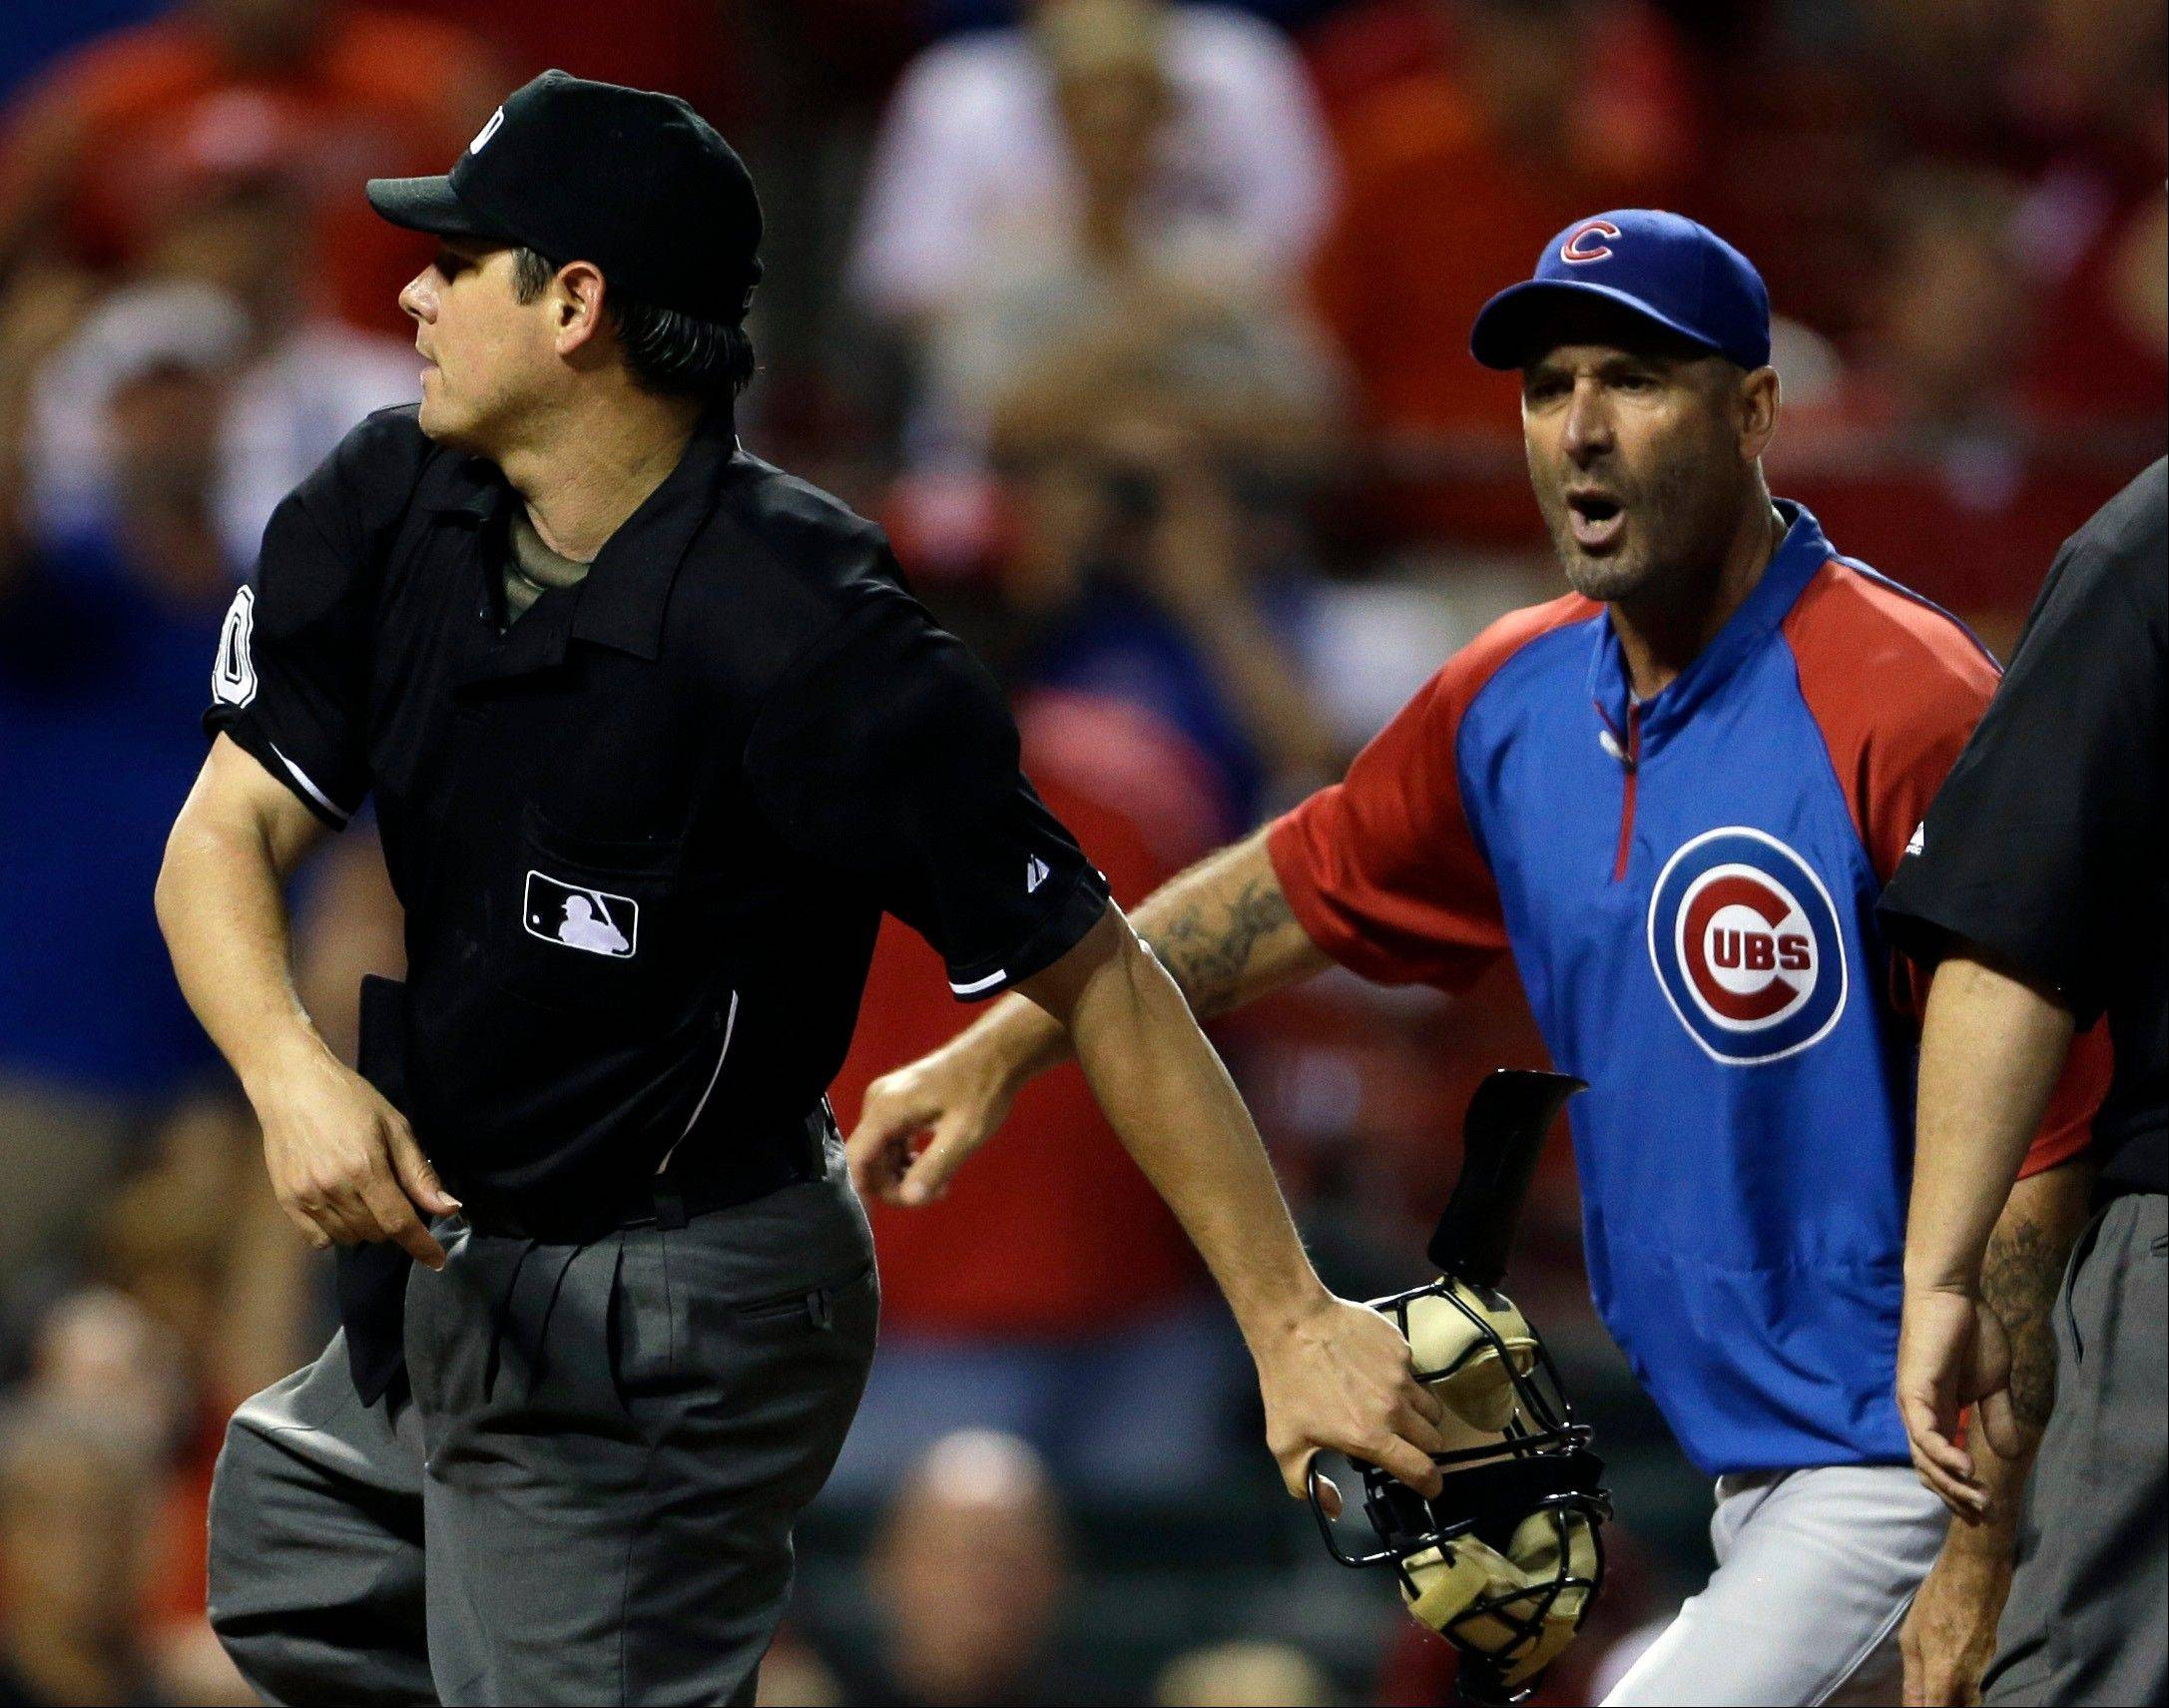 Chicago Cubs manager Dale Sveum, right, is thrown out by home plate umpire D.J. Reyburn during the seventh inning of a baseball game on against the St. Louis Cardinals on Monday, June 17, 2013, in St. Louis.